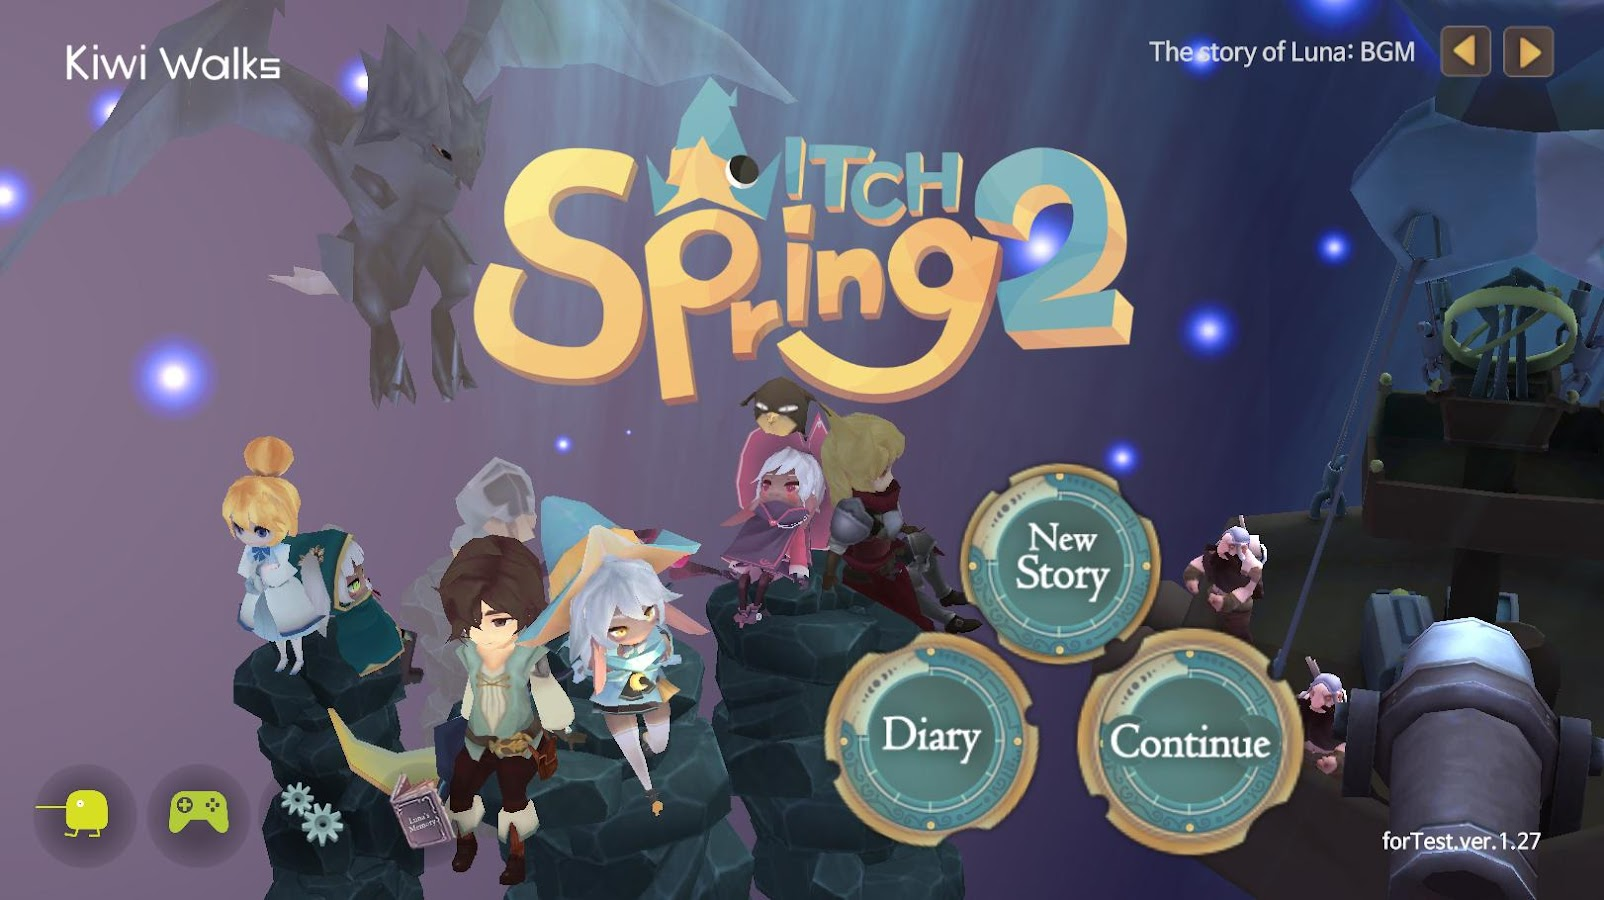 WitchSpring2 Screenshot 13